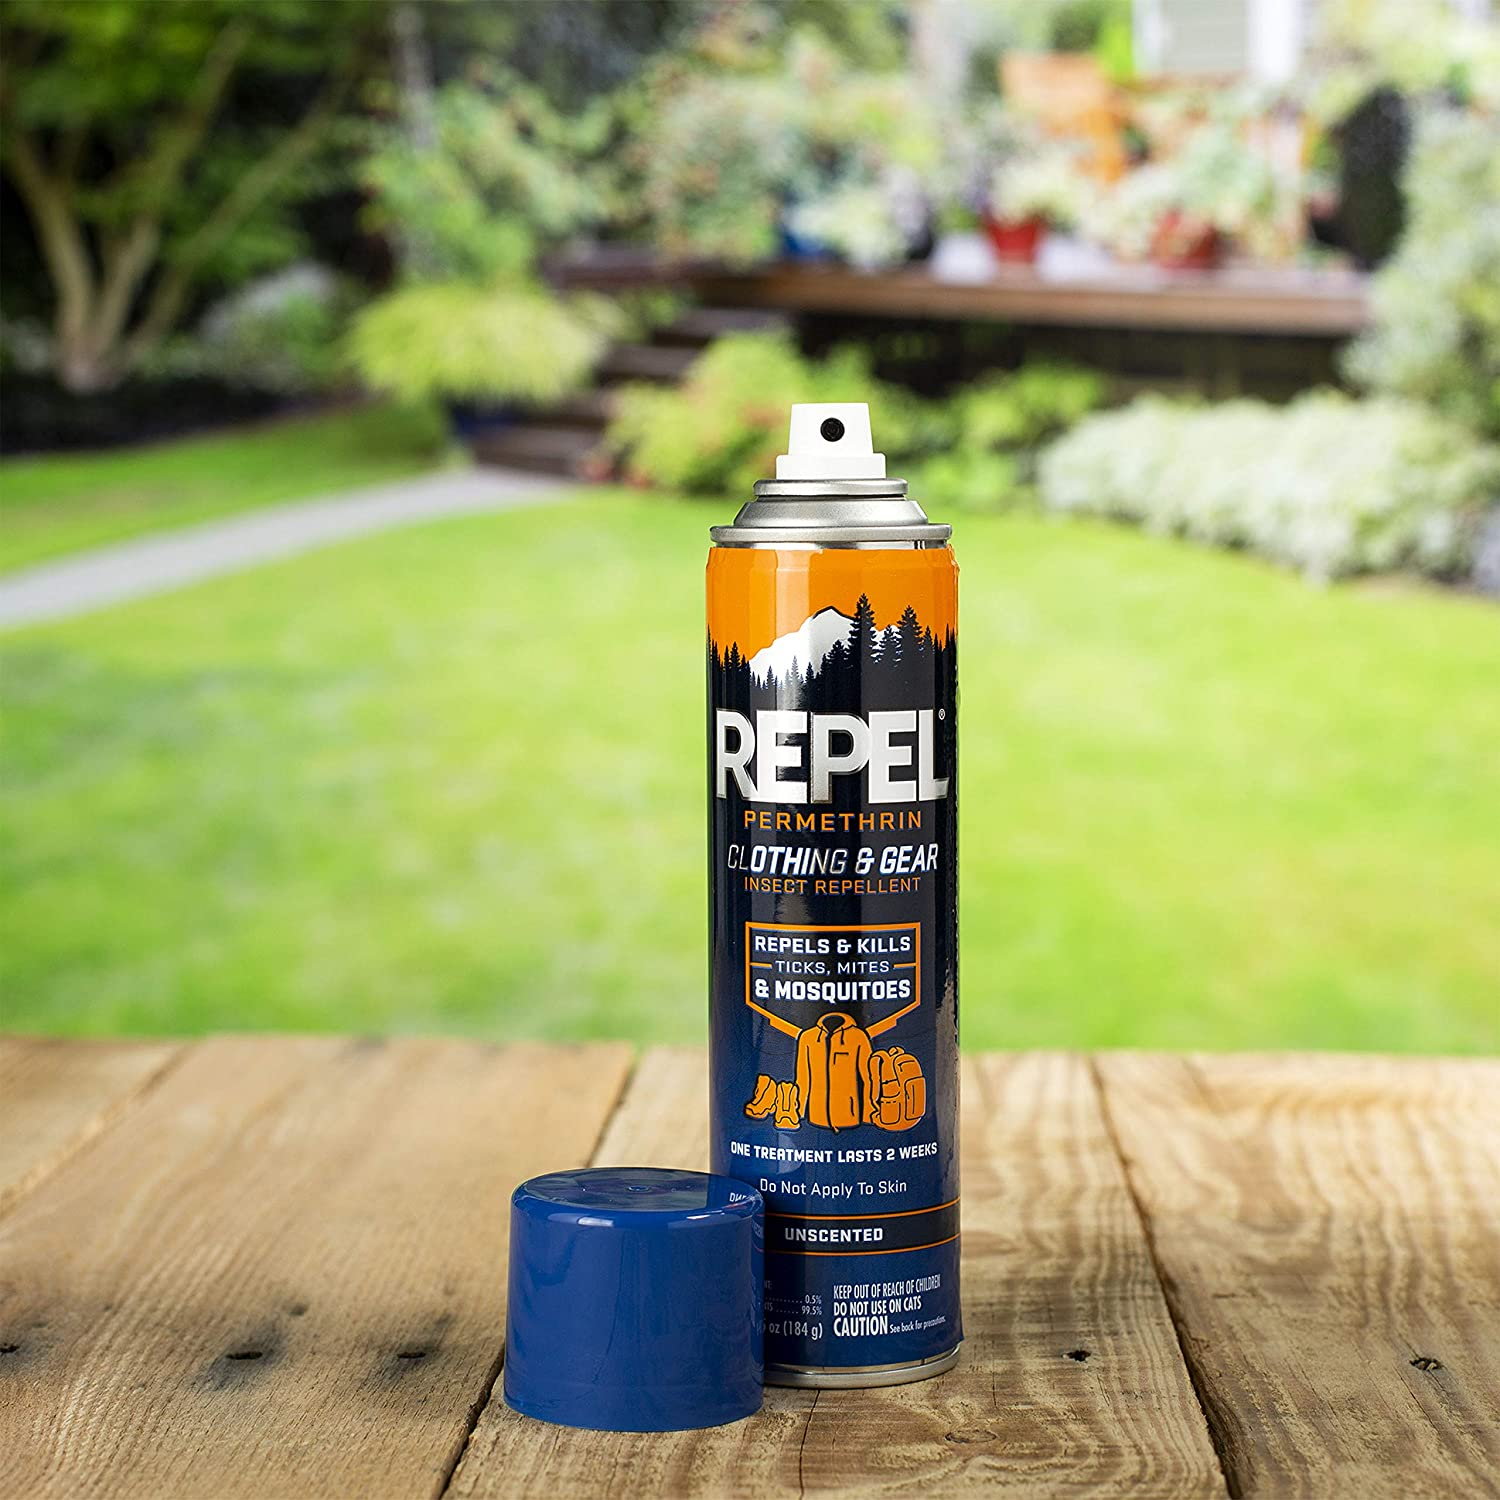 Repel Permethrin Clothing and Gear Insect Repellent